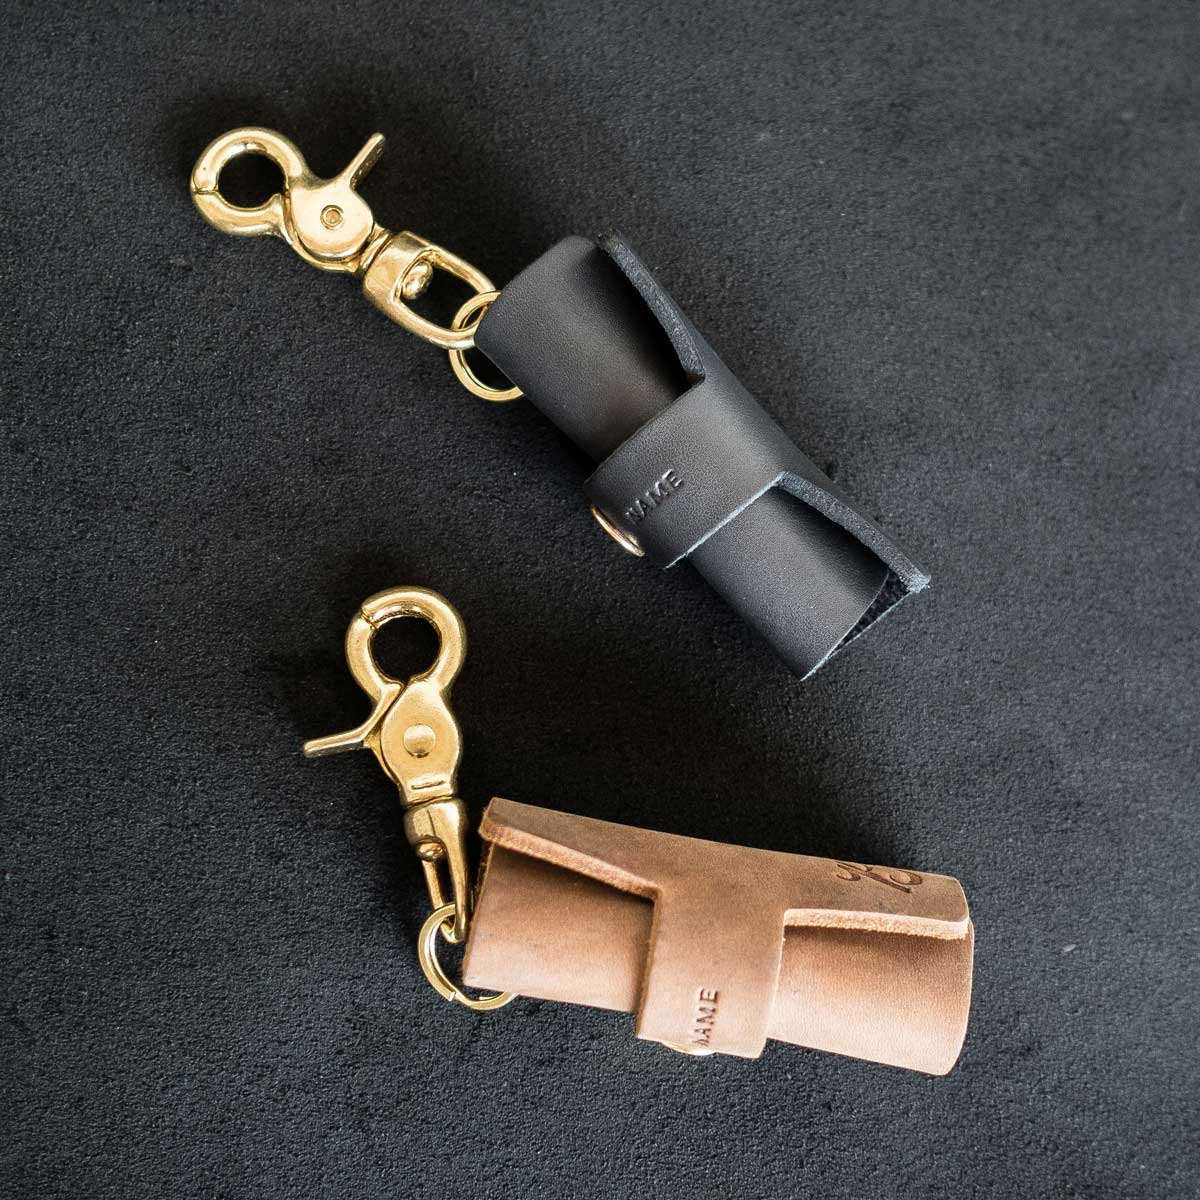 Chaveiro - ROLL KEYCHAIN - BRAVEMAN LEATHER GOODS